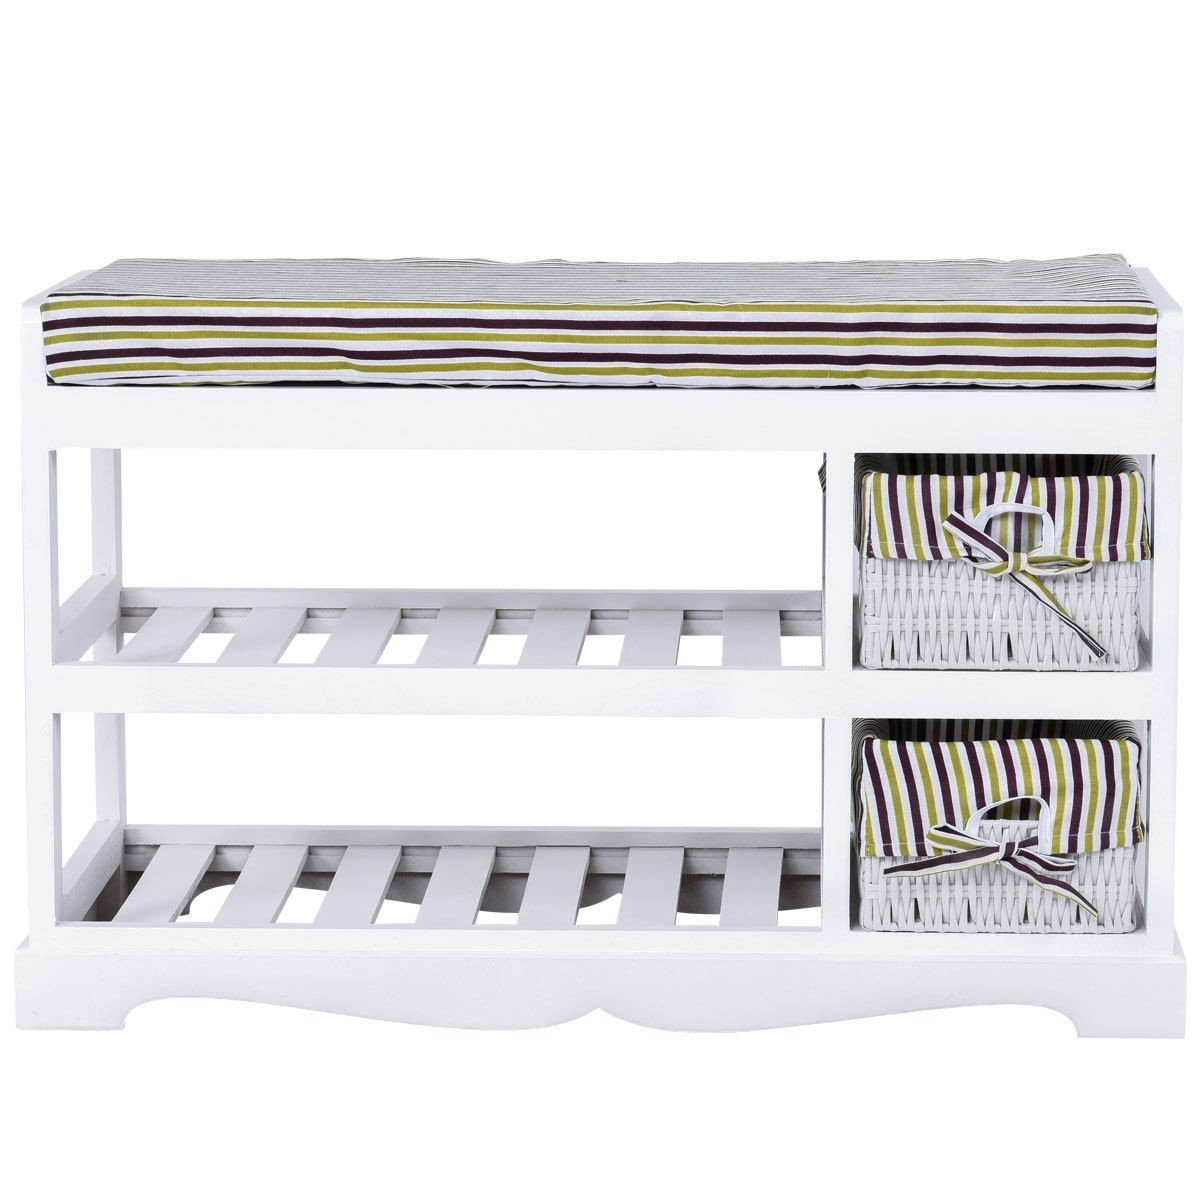 Shoe Storage Bench Rack Entryway Padded Seat White Wood Furniture 2 Basket MD Group